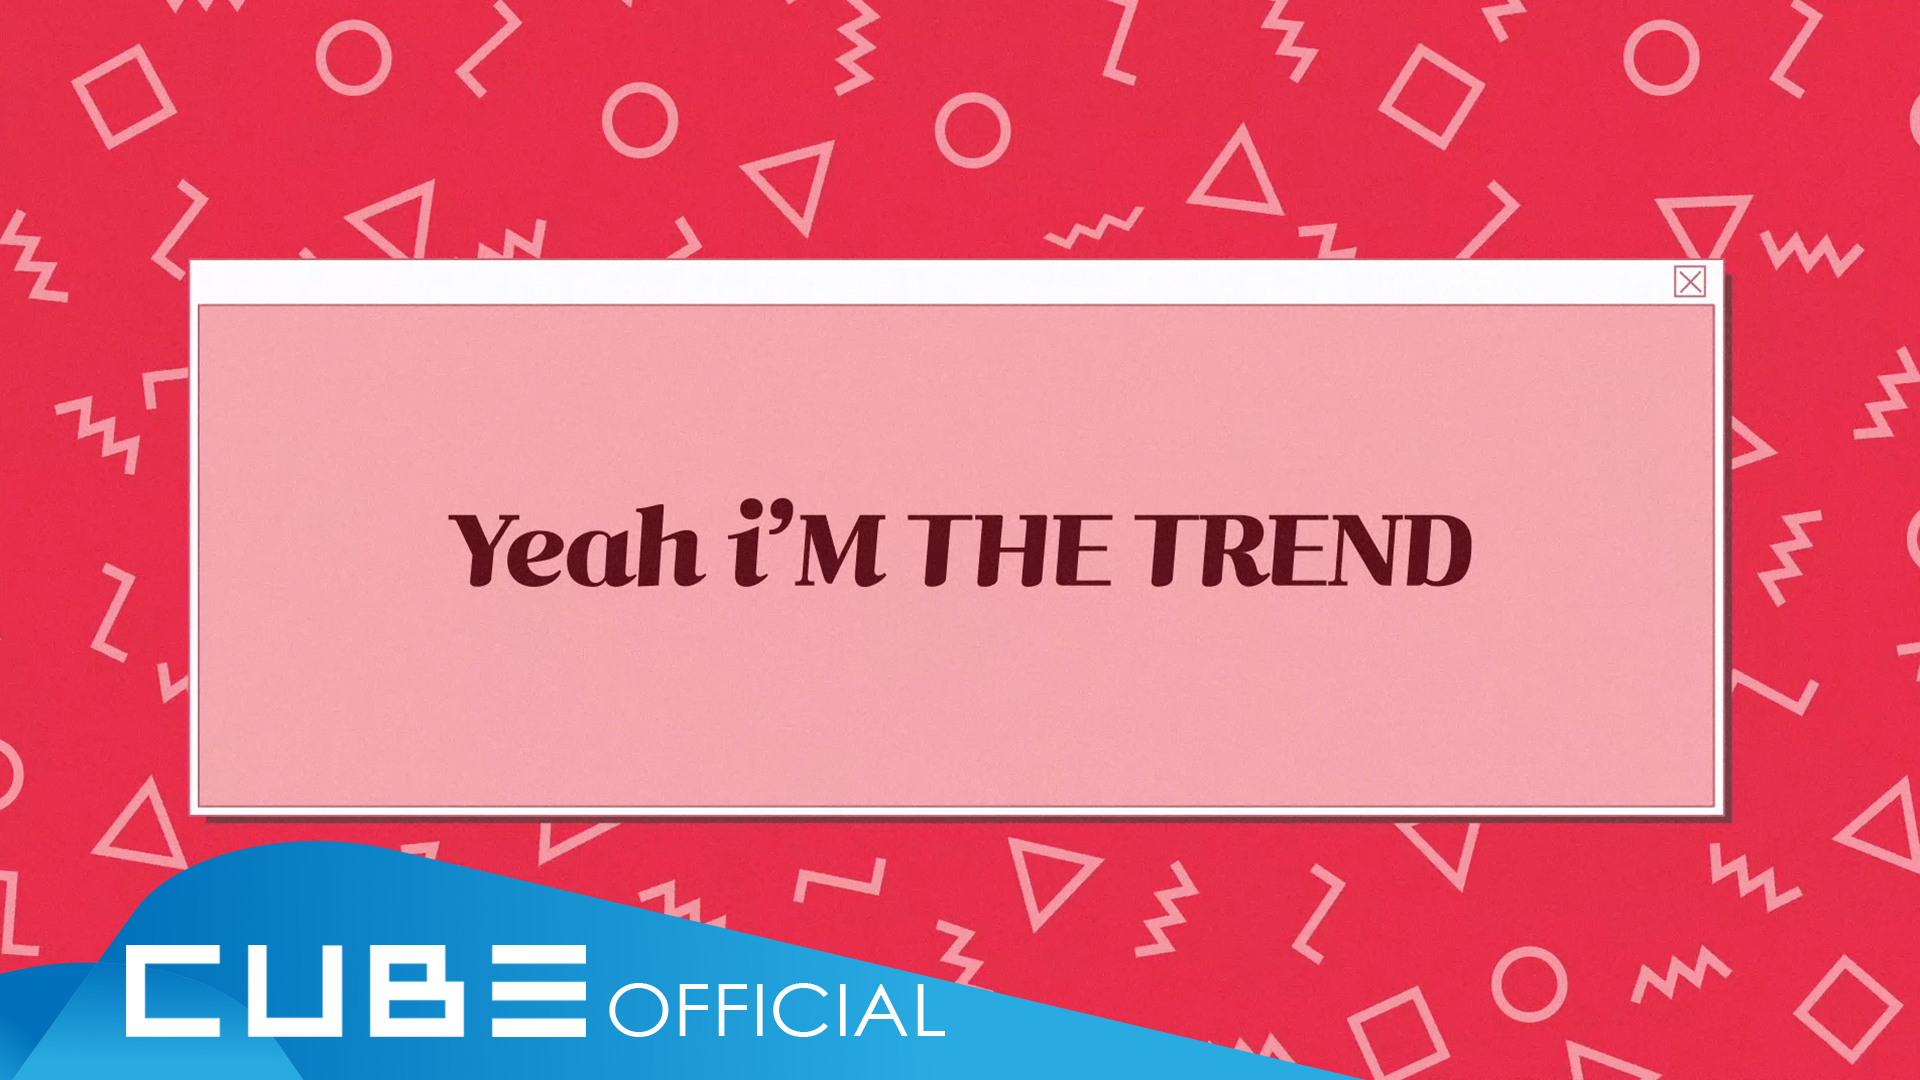 (여자)아이들 - 'i'M THE TREND' Lyric Video